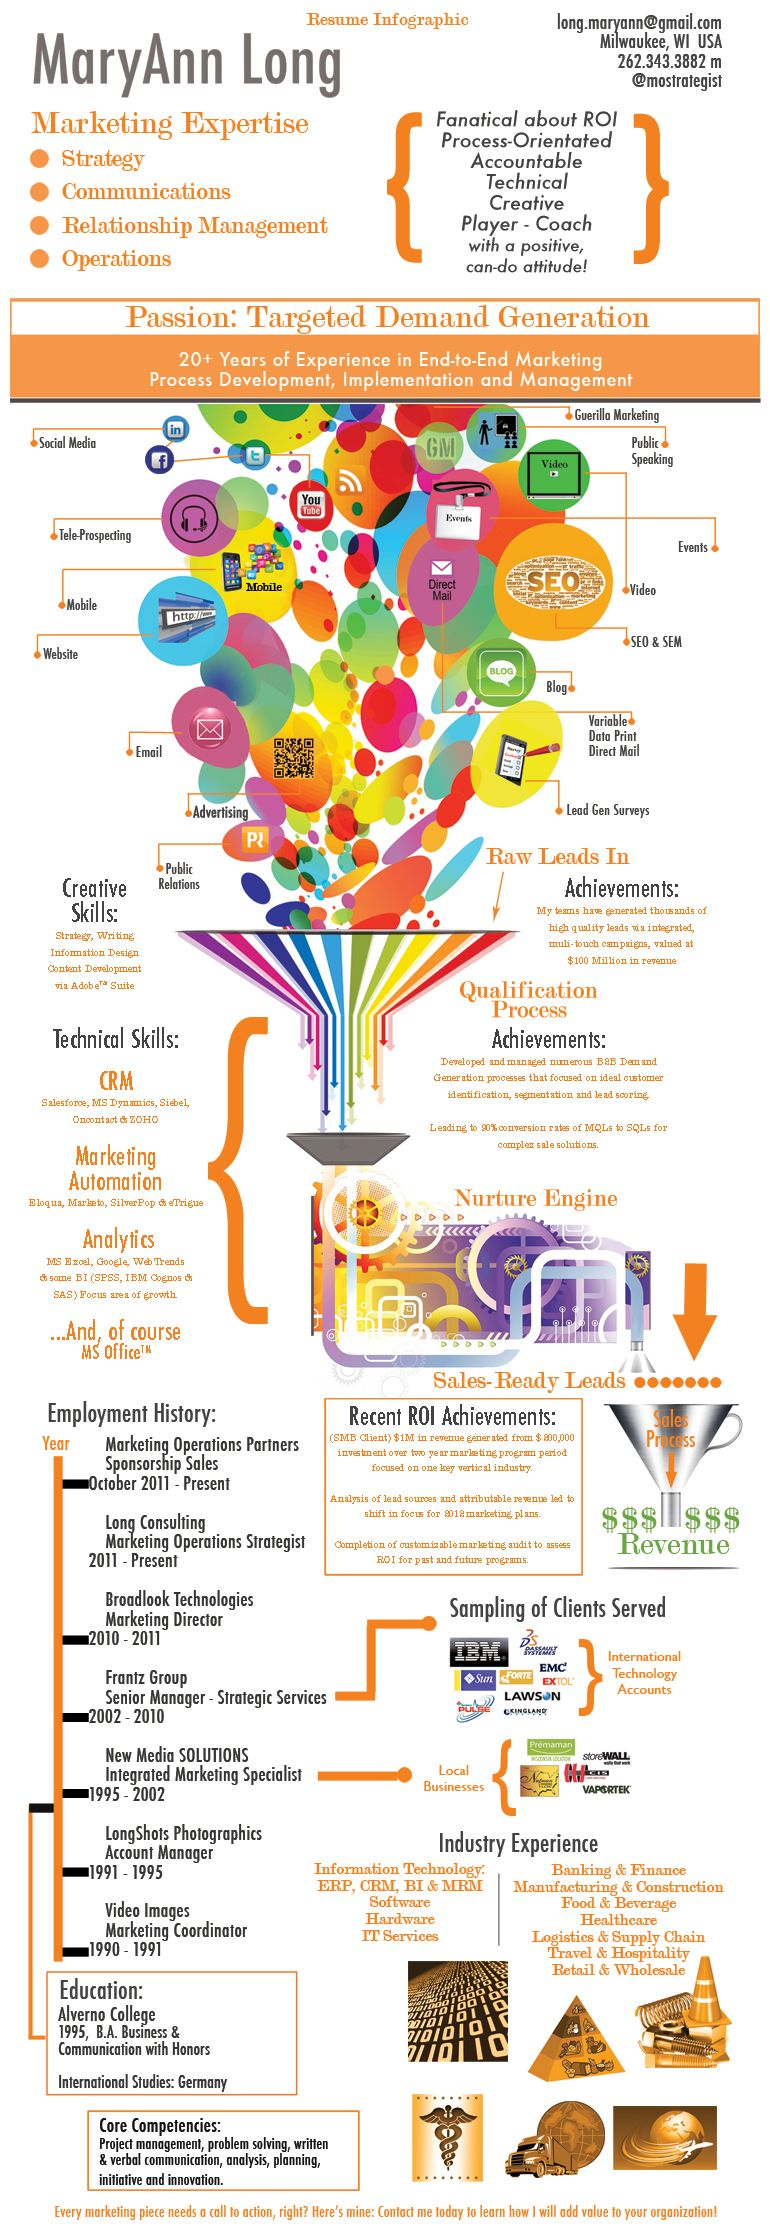 Resume Infographic infographic resume best practices 1000 Images About Infographic Resume On Pinterest Creative Infographic Resume And Creative Resume